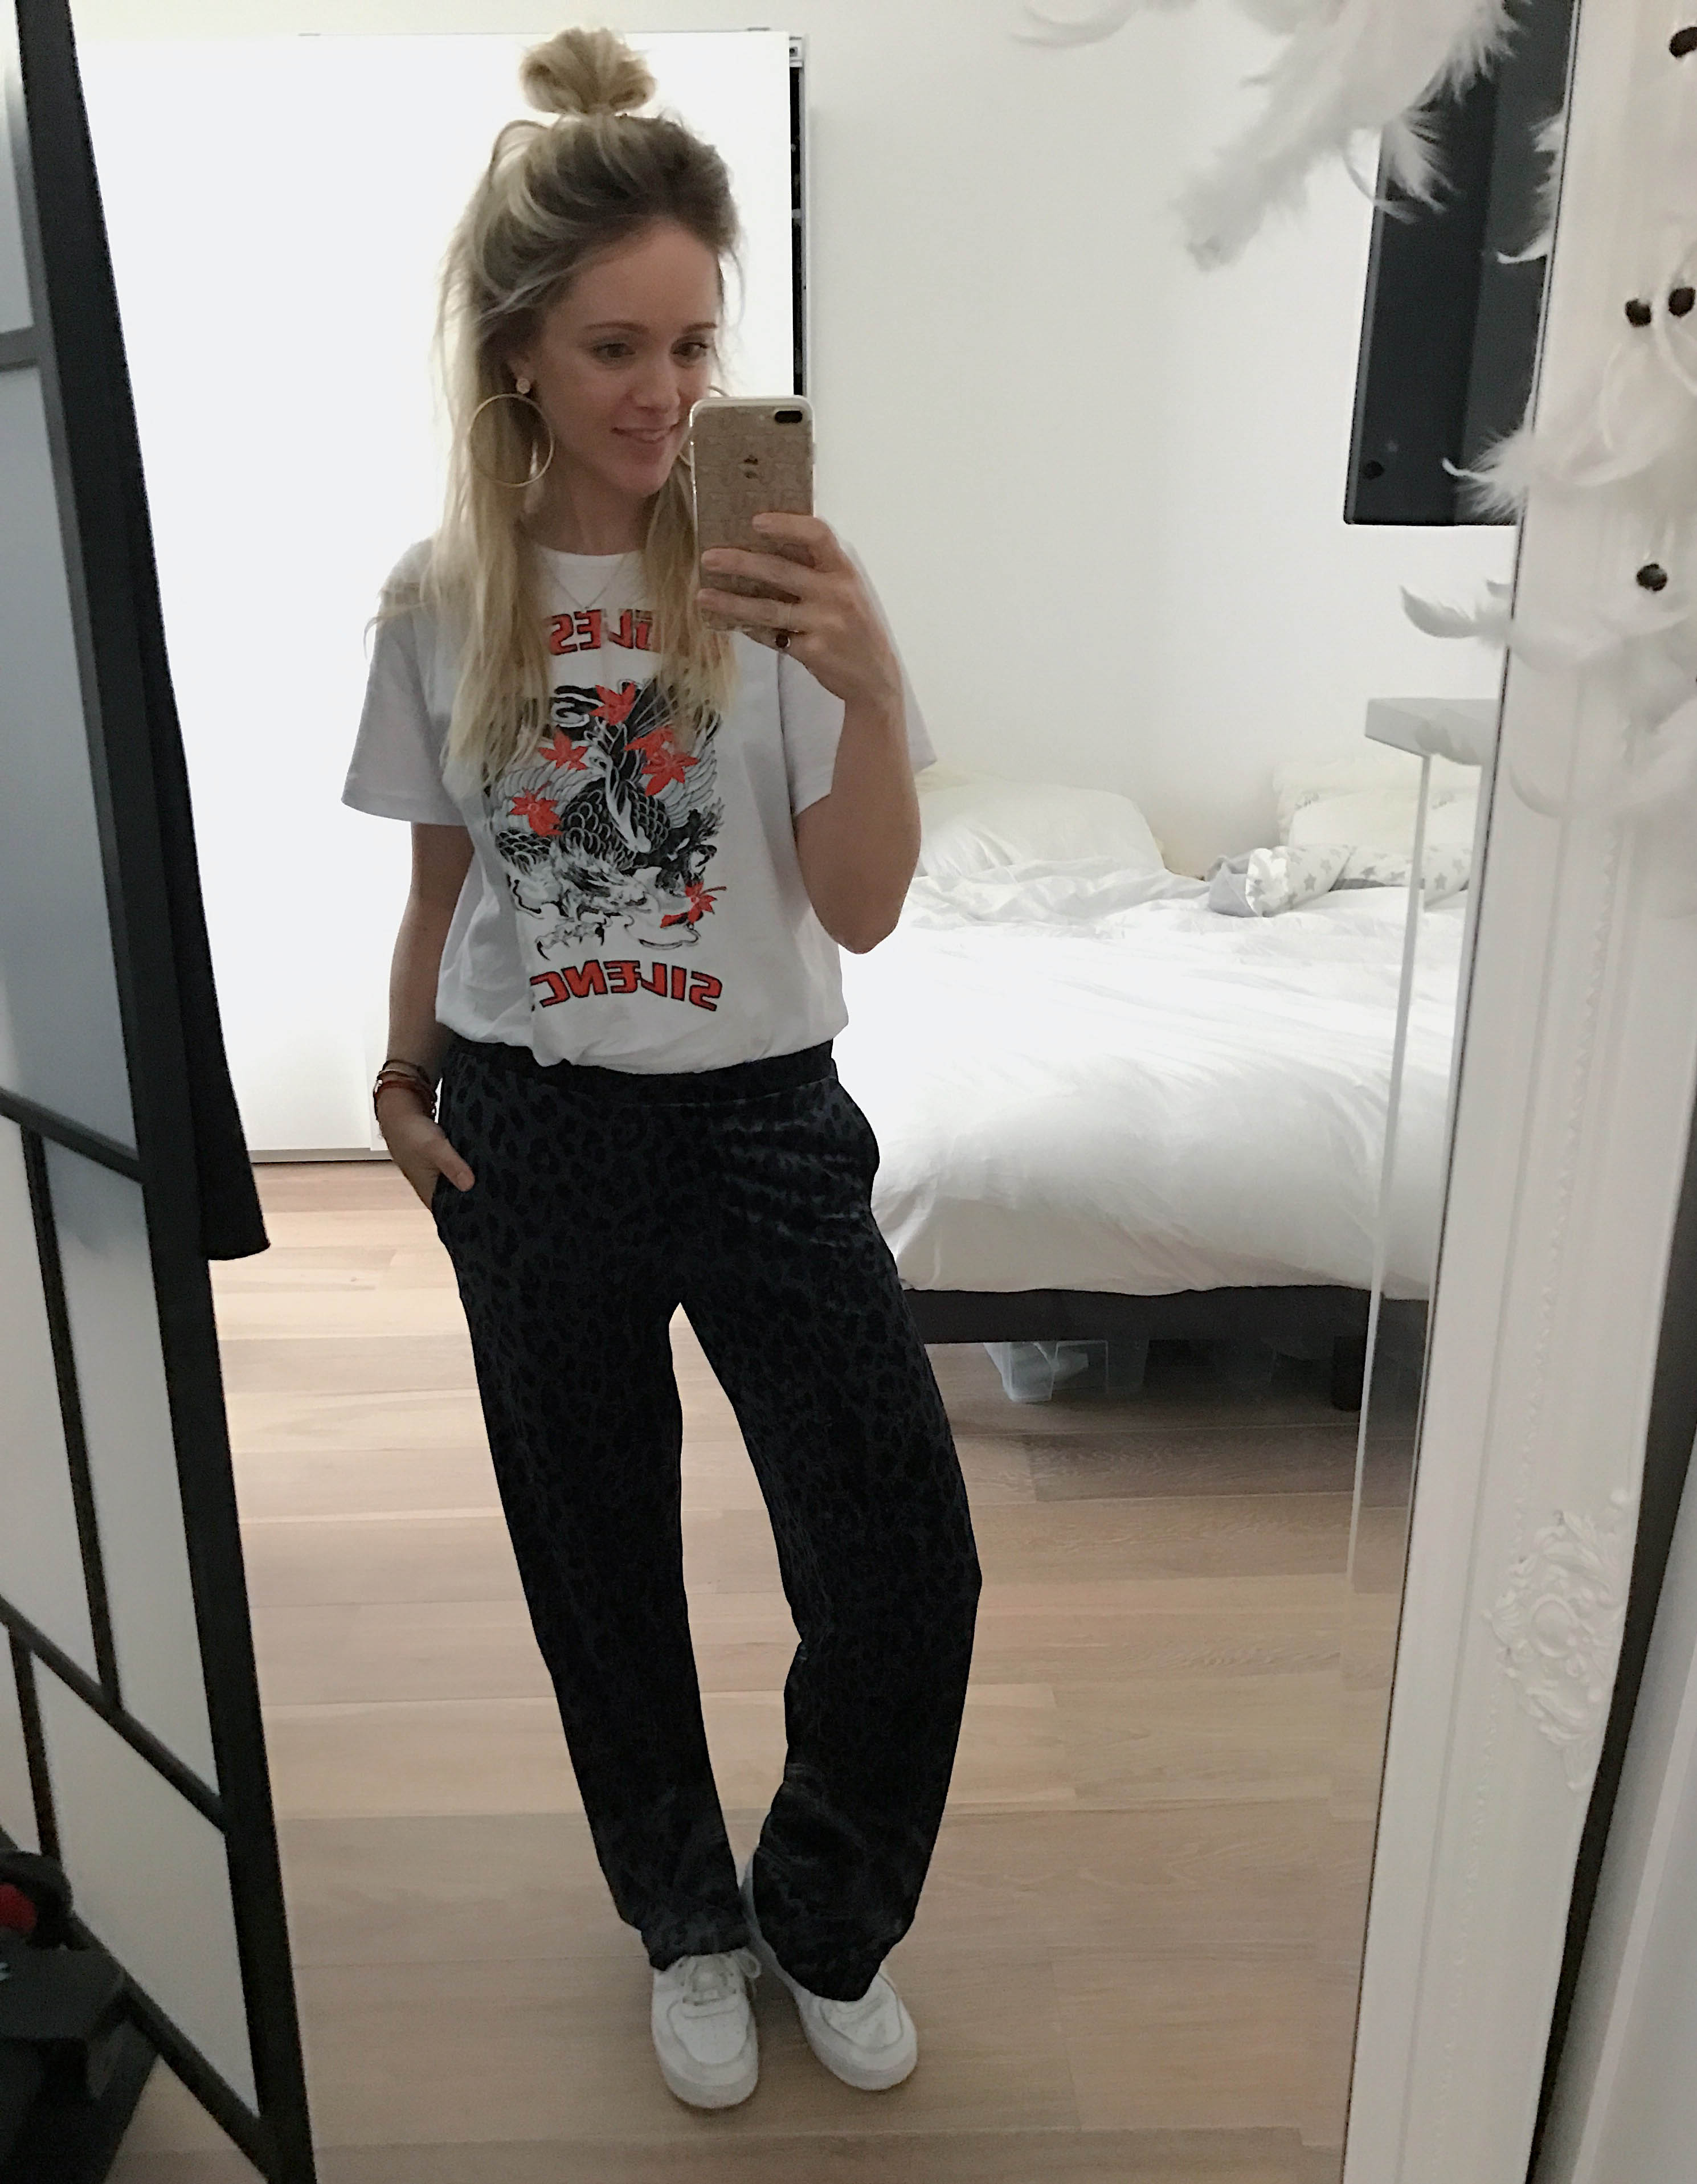 Stylist & Mom Lizet Greve shares her street style looks